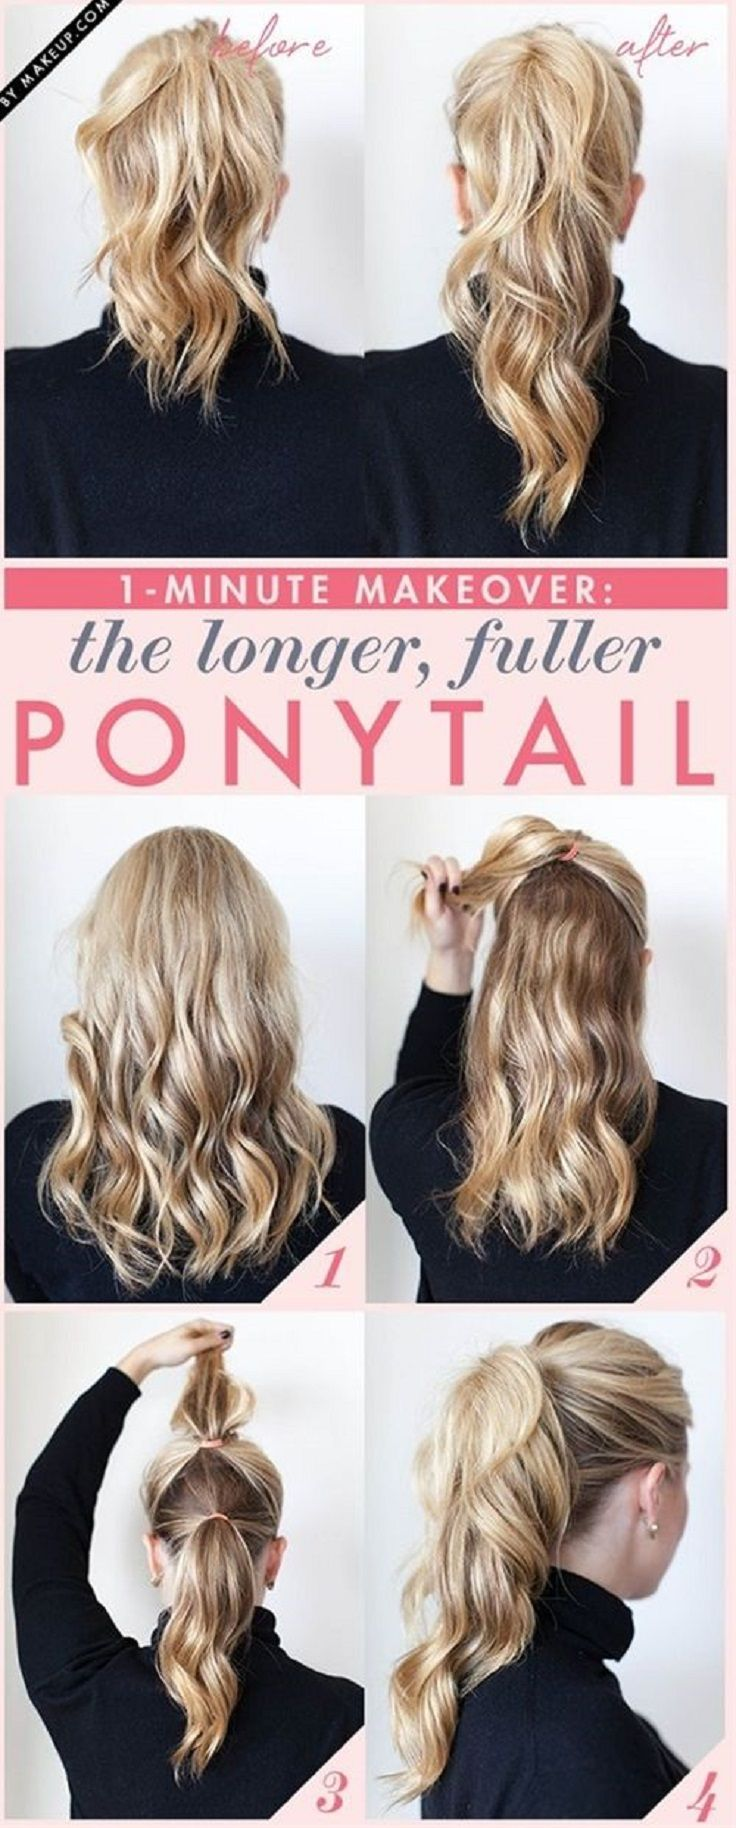 Top super easy minute hairstyles for busy ladies makeup